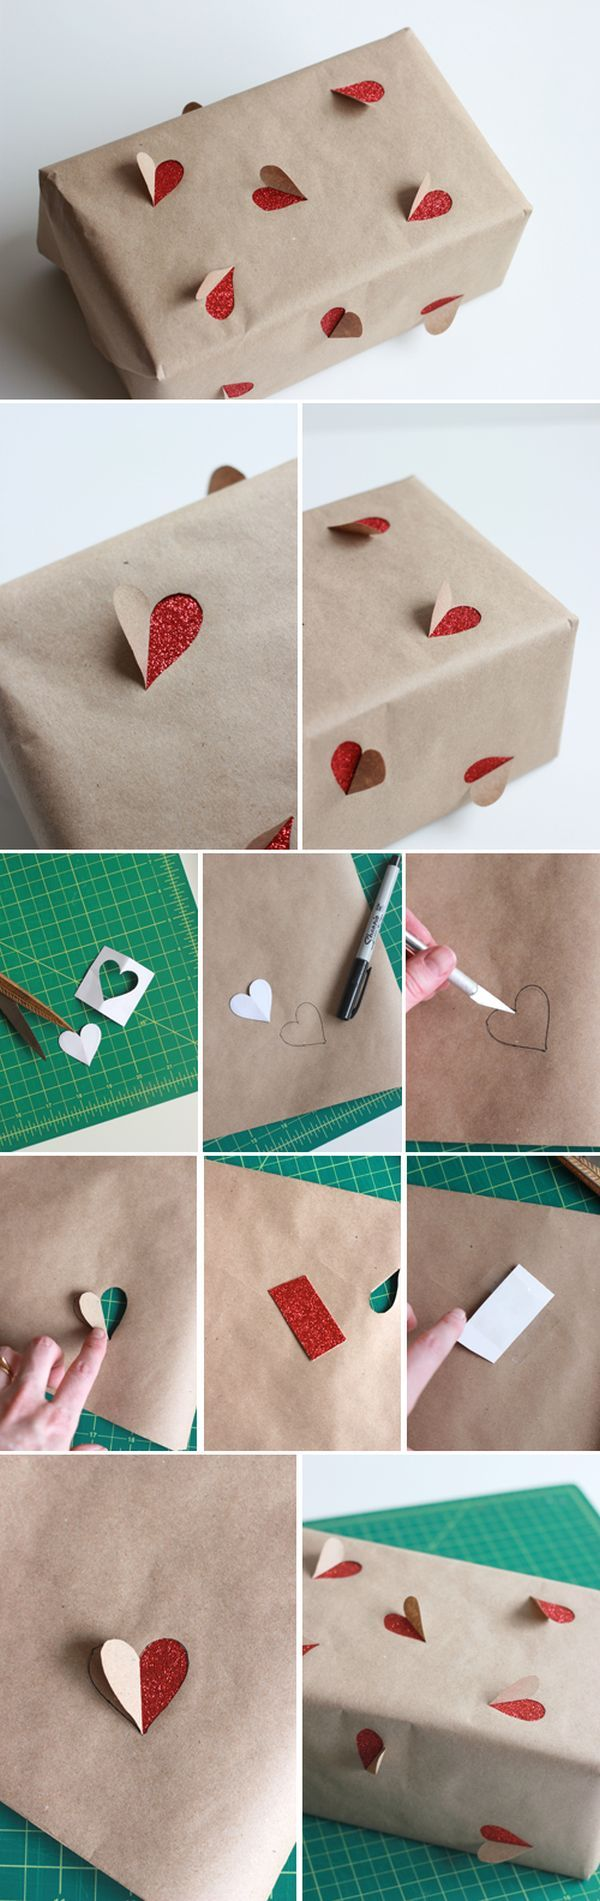 Add a bit of flair to boring gift wrap—11 Sweet Gift Wrapping Ideas For Valentine's Day